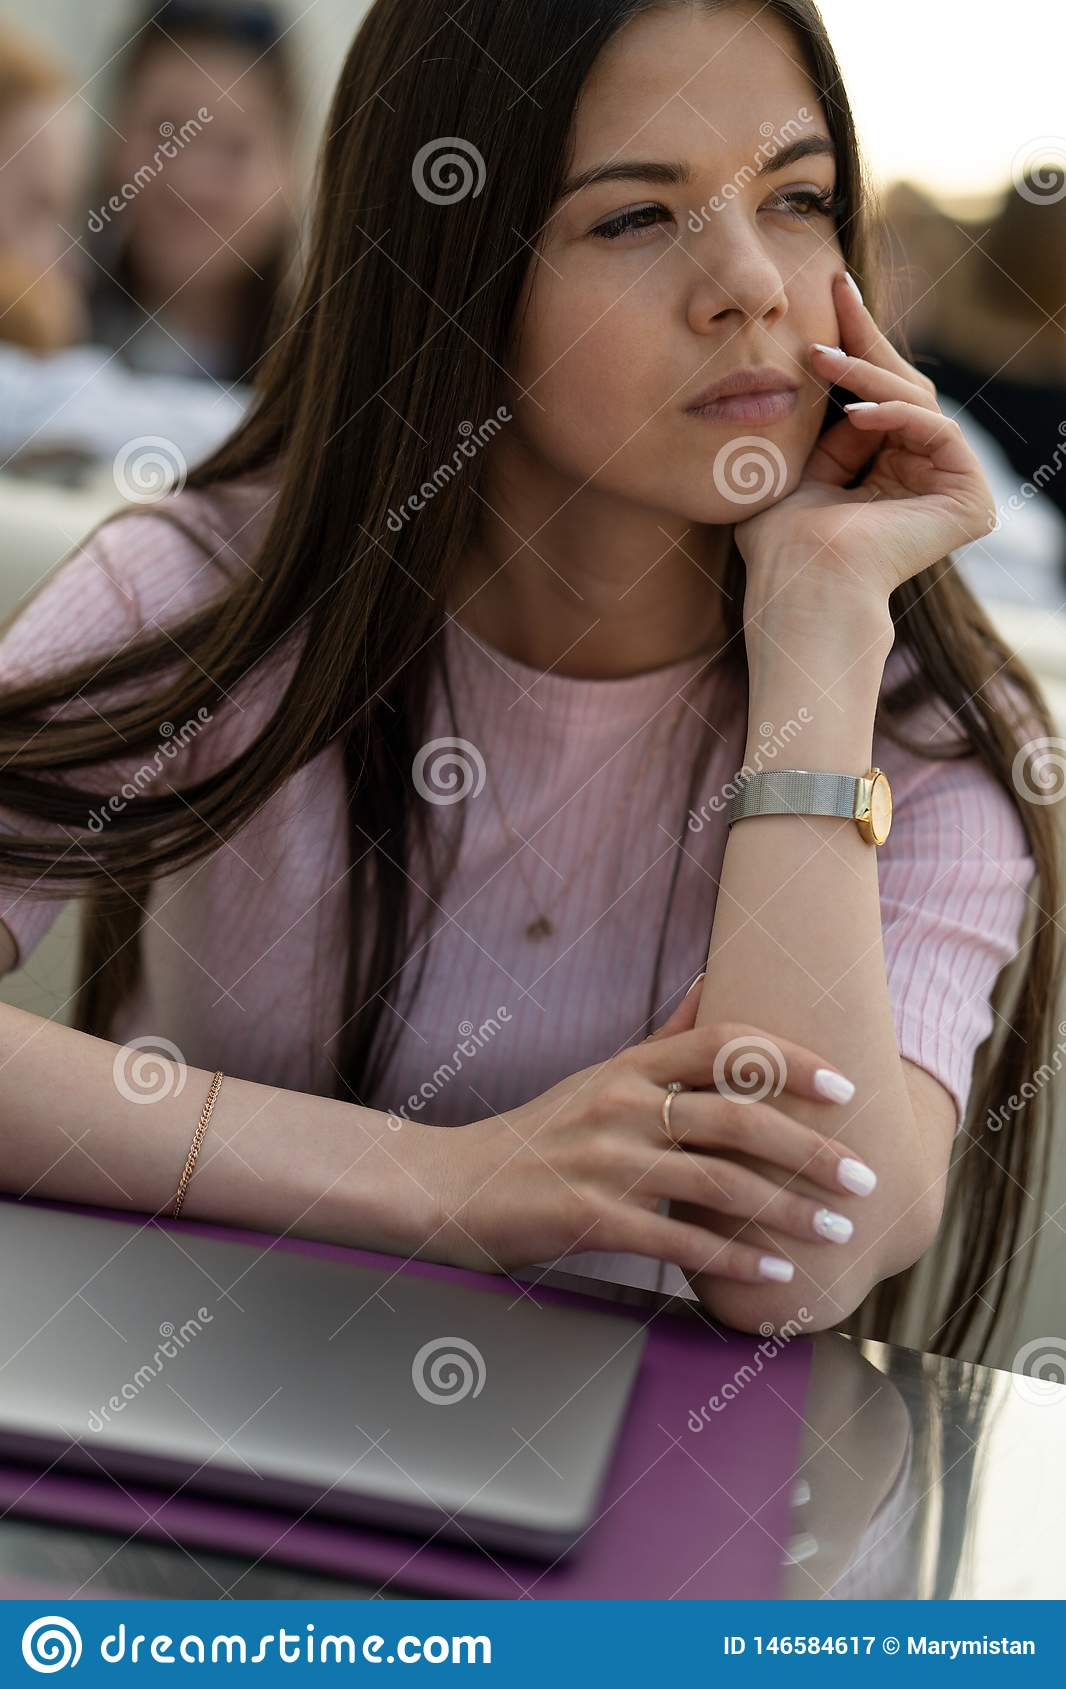 The girl thought in a cafe. In front of the girl is a closed laptop